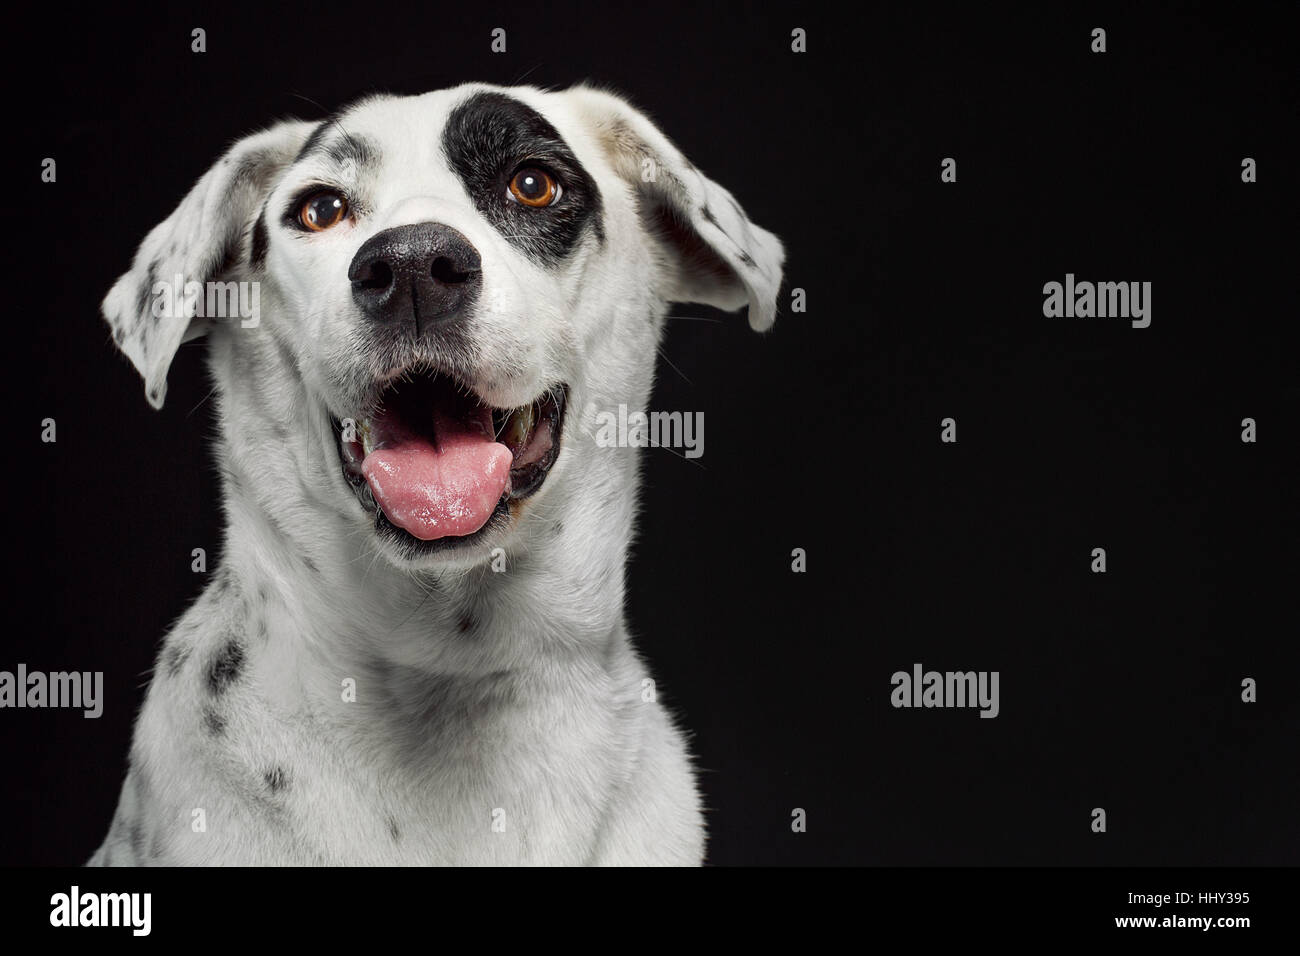 Portrait of a white smiling dog (dalmatian mix) on a black seamless background. - Stock Image